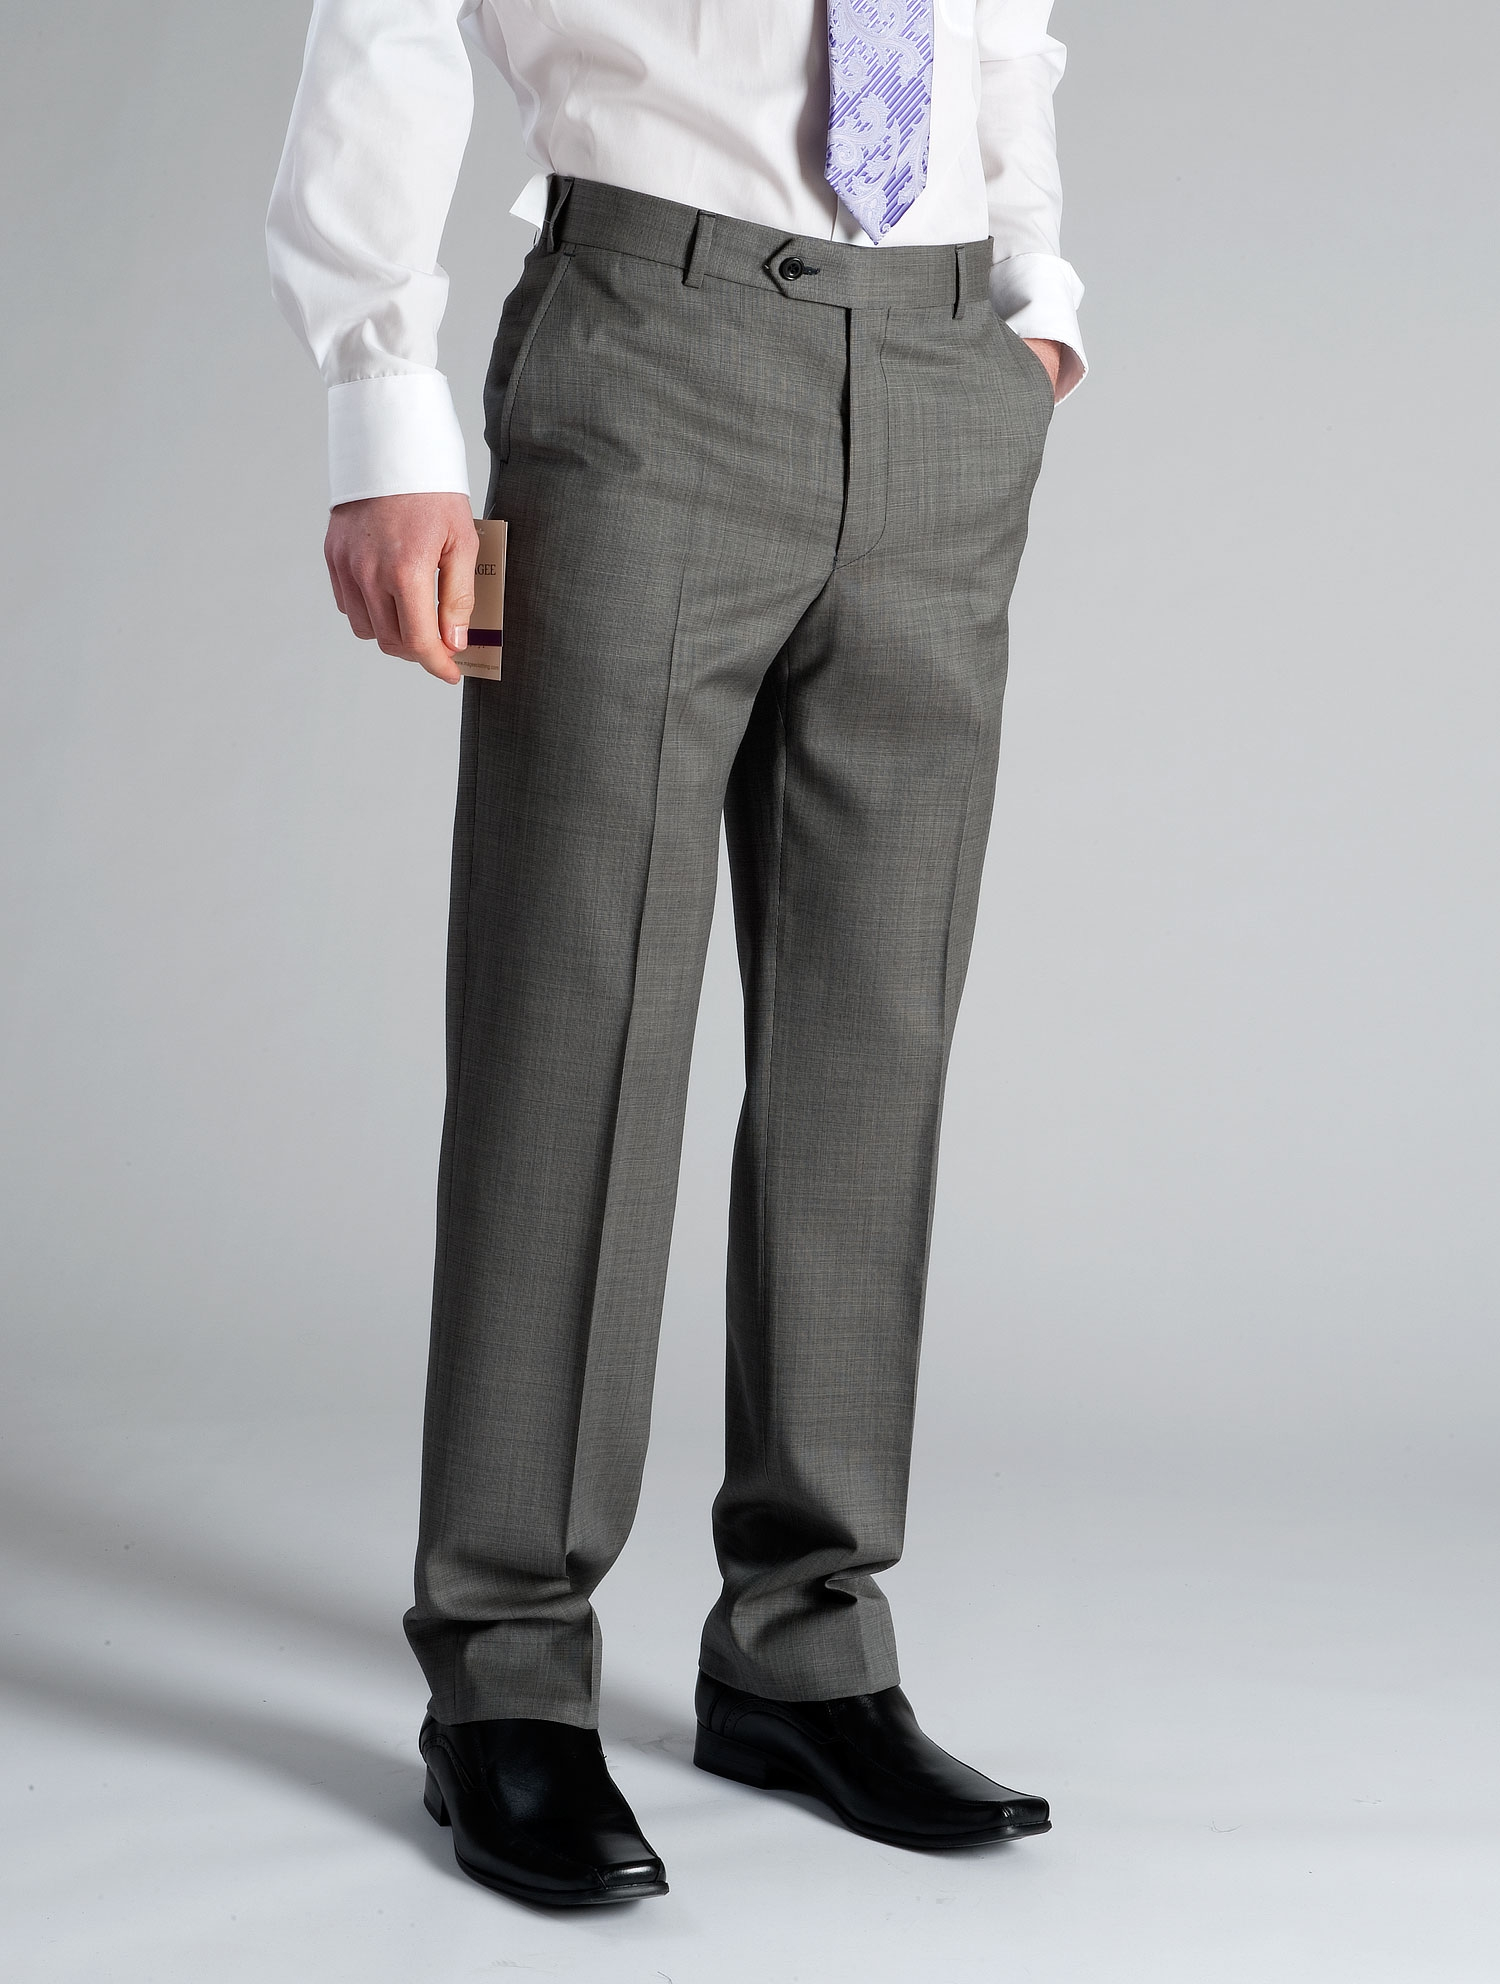 Silver Grey Trousers Ref:19609